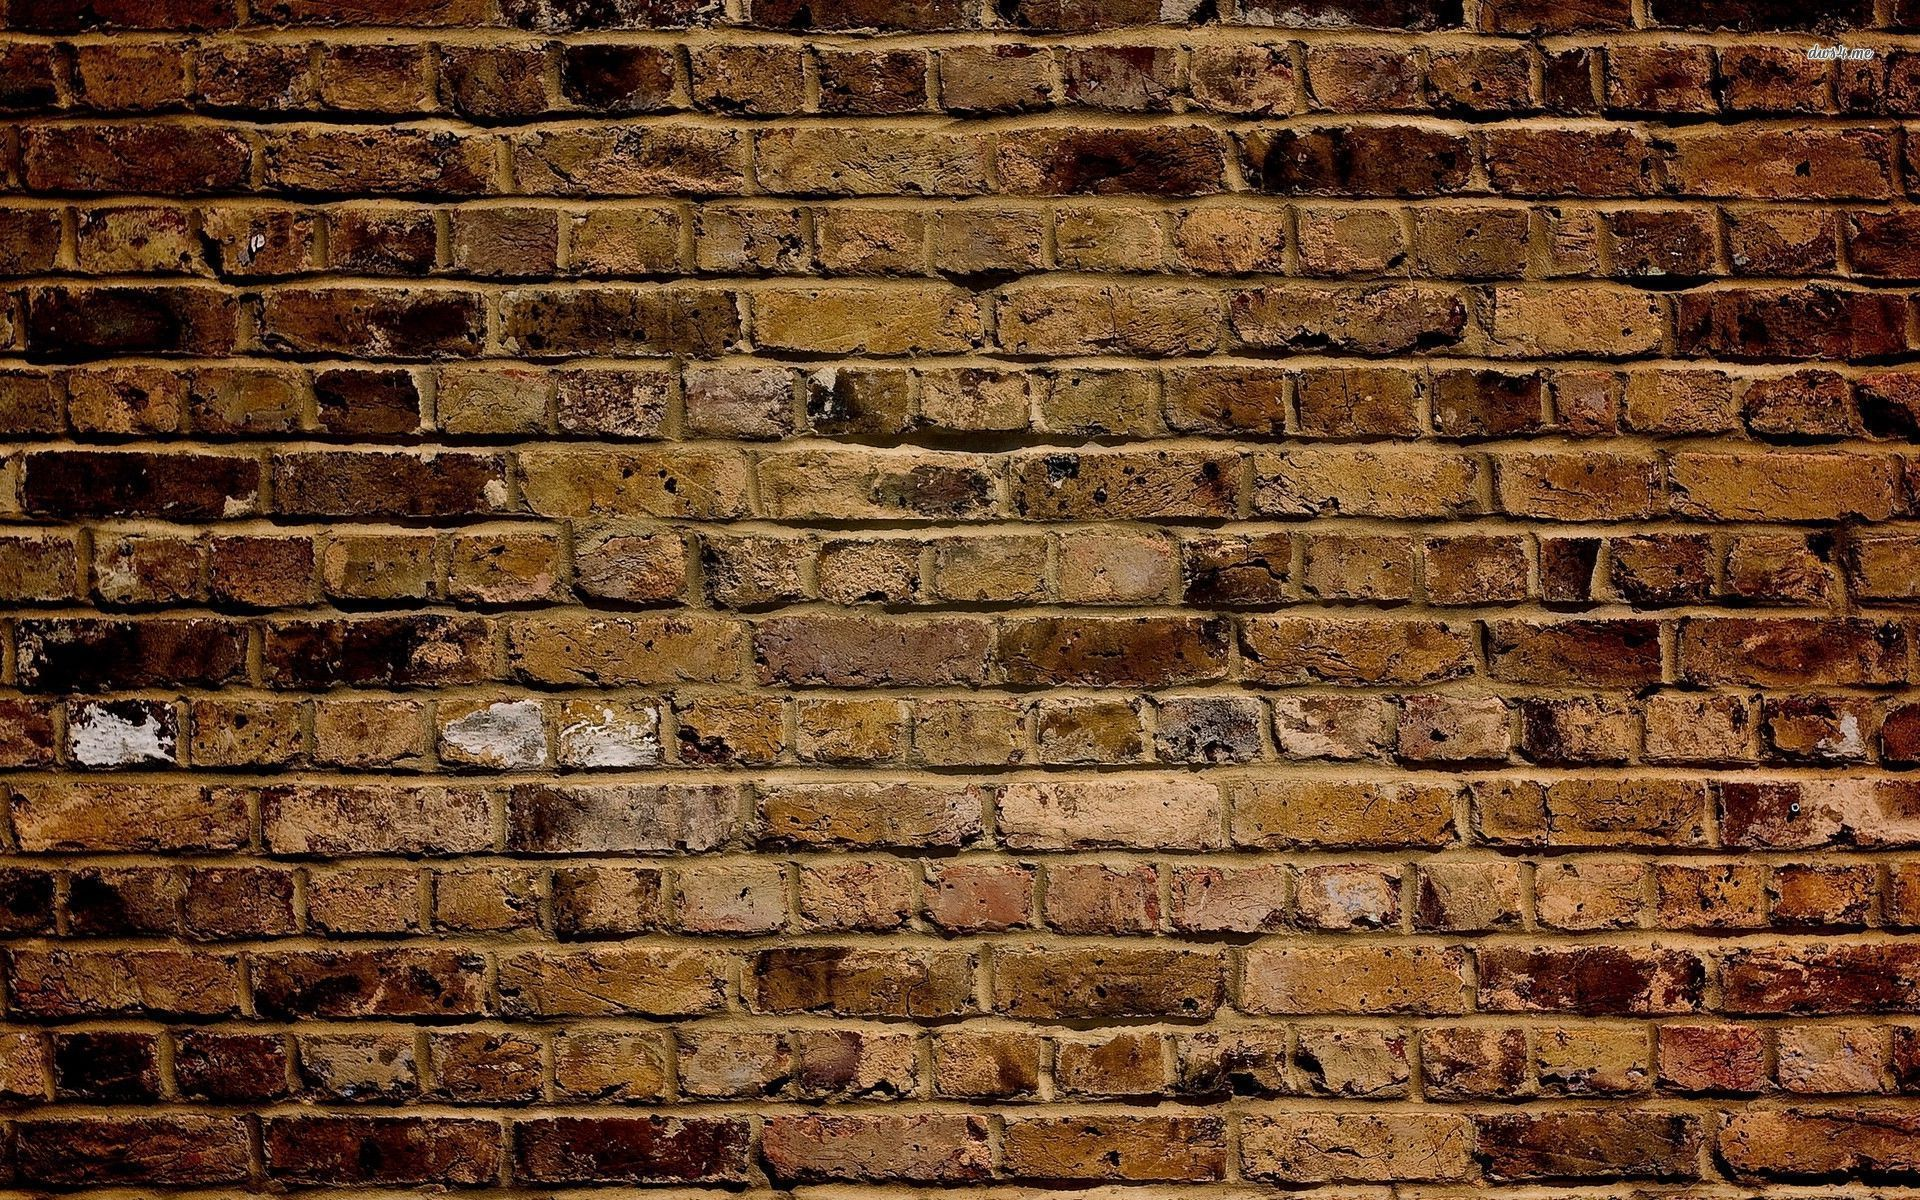 Brick wallpapers full hd wallpaper search home office for Wallpaper images for house walls